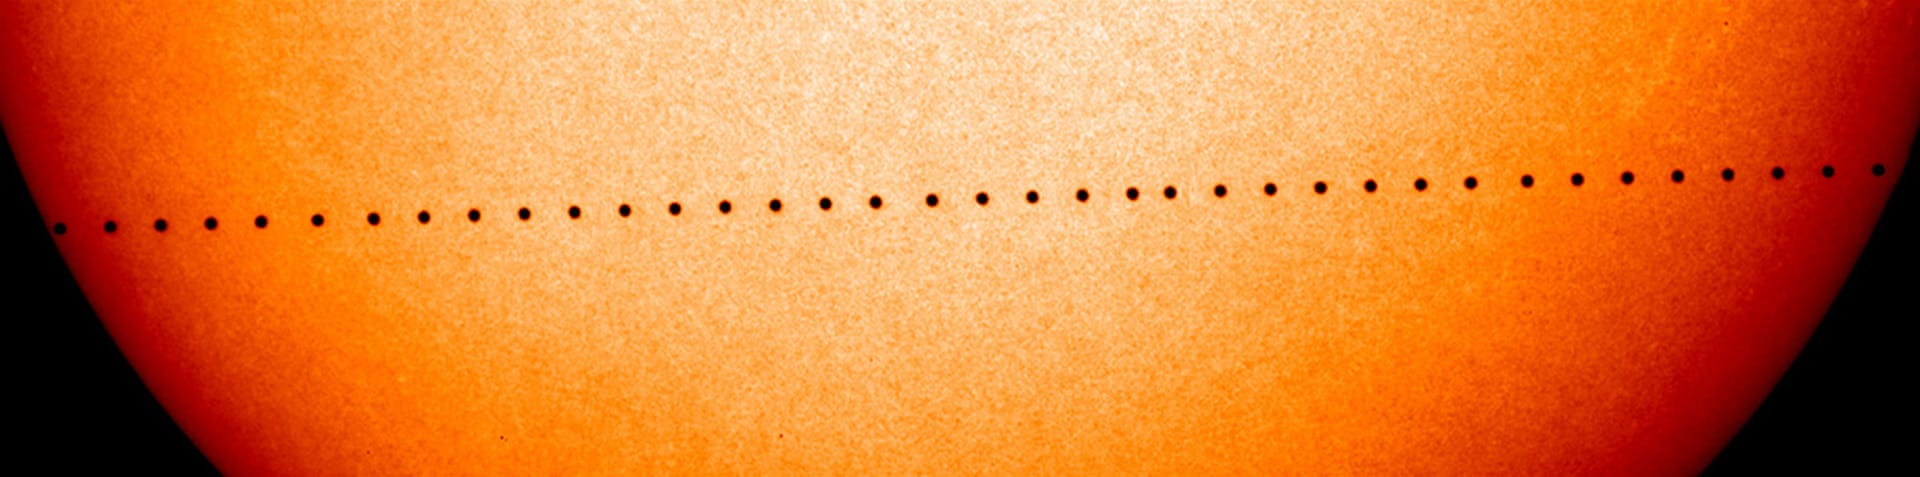 Mercury will next pass directly across the face of the Sun in 2019, and then not until 2032 [NASA]